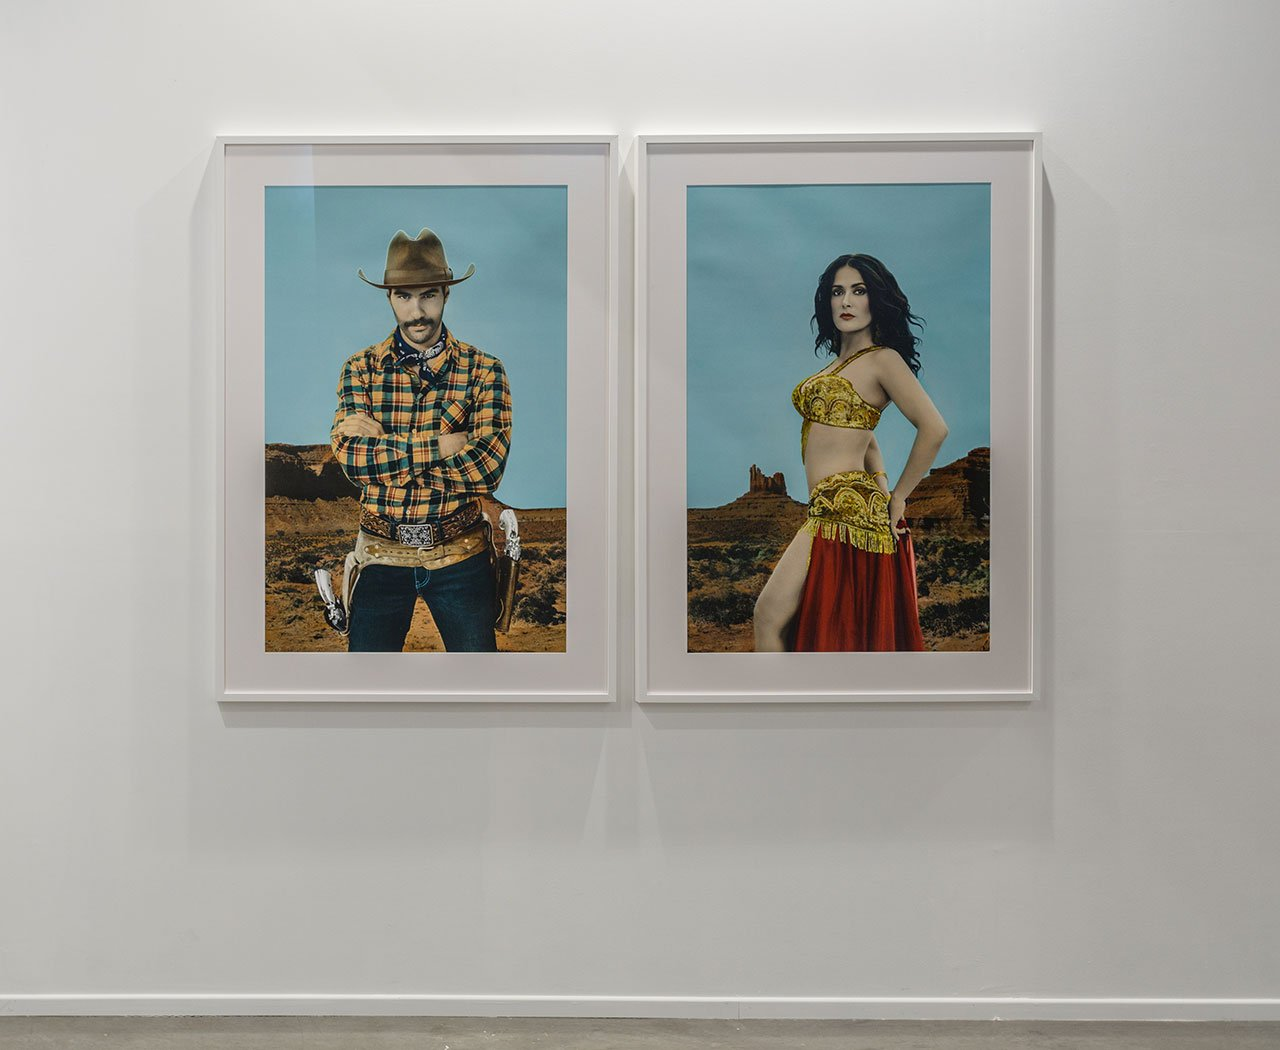 Youssef Nabil, I Saved My Belly Dancer #XXIII,2015. Installation view. Photo courtesy the artist and The Third Line gallery.